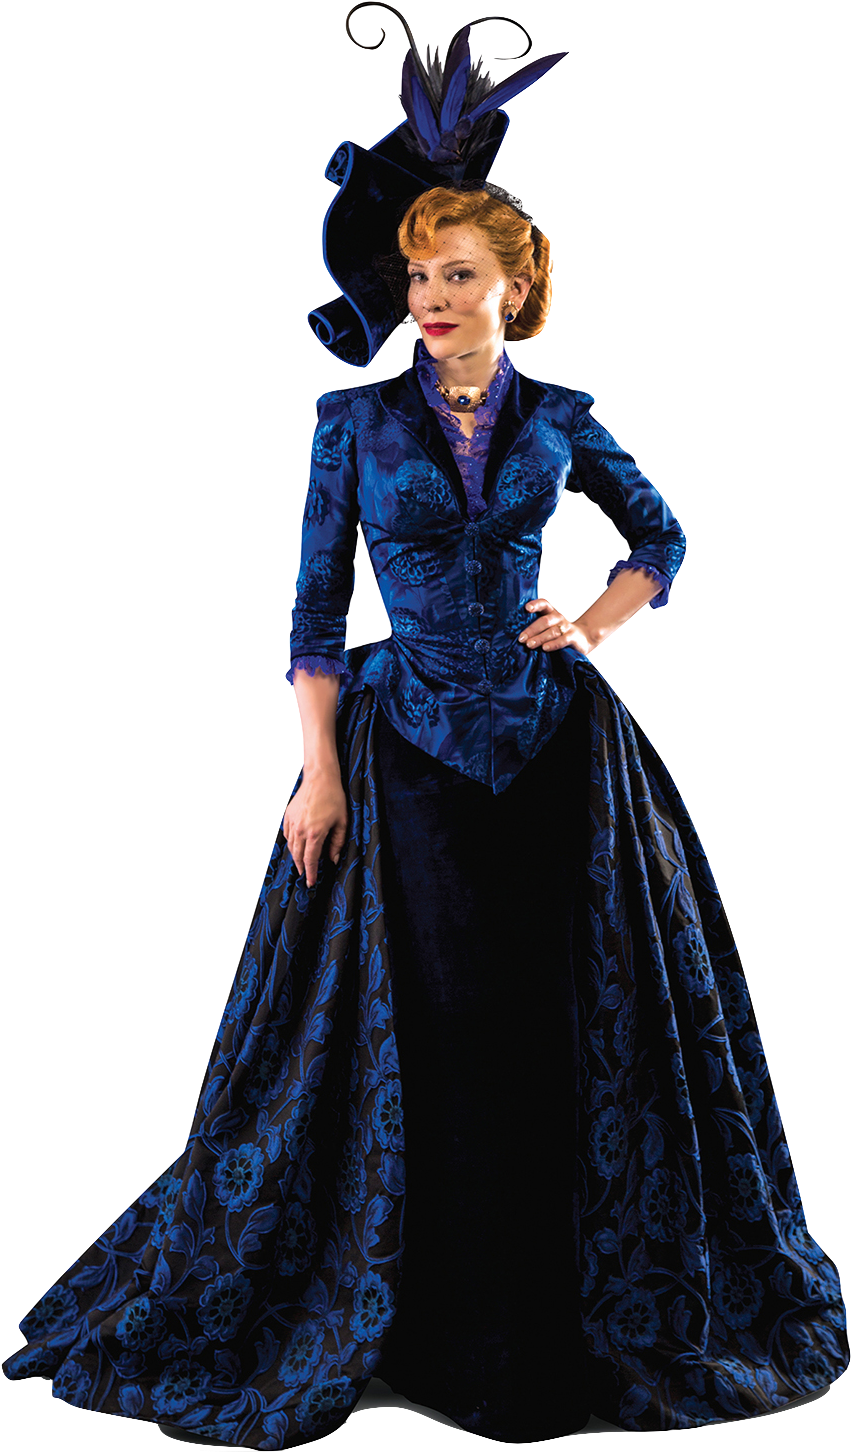 Lady saw png. Cate blanchett as tremaine